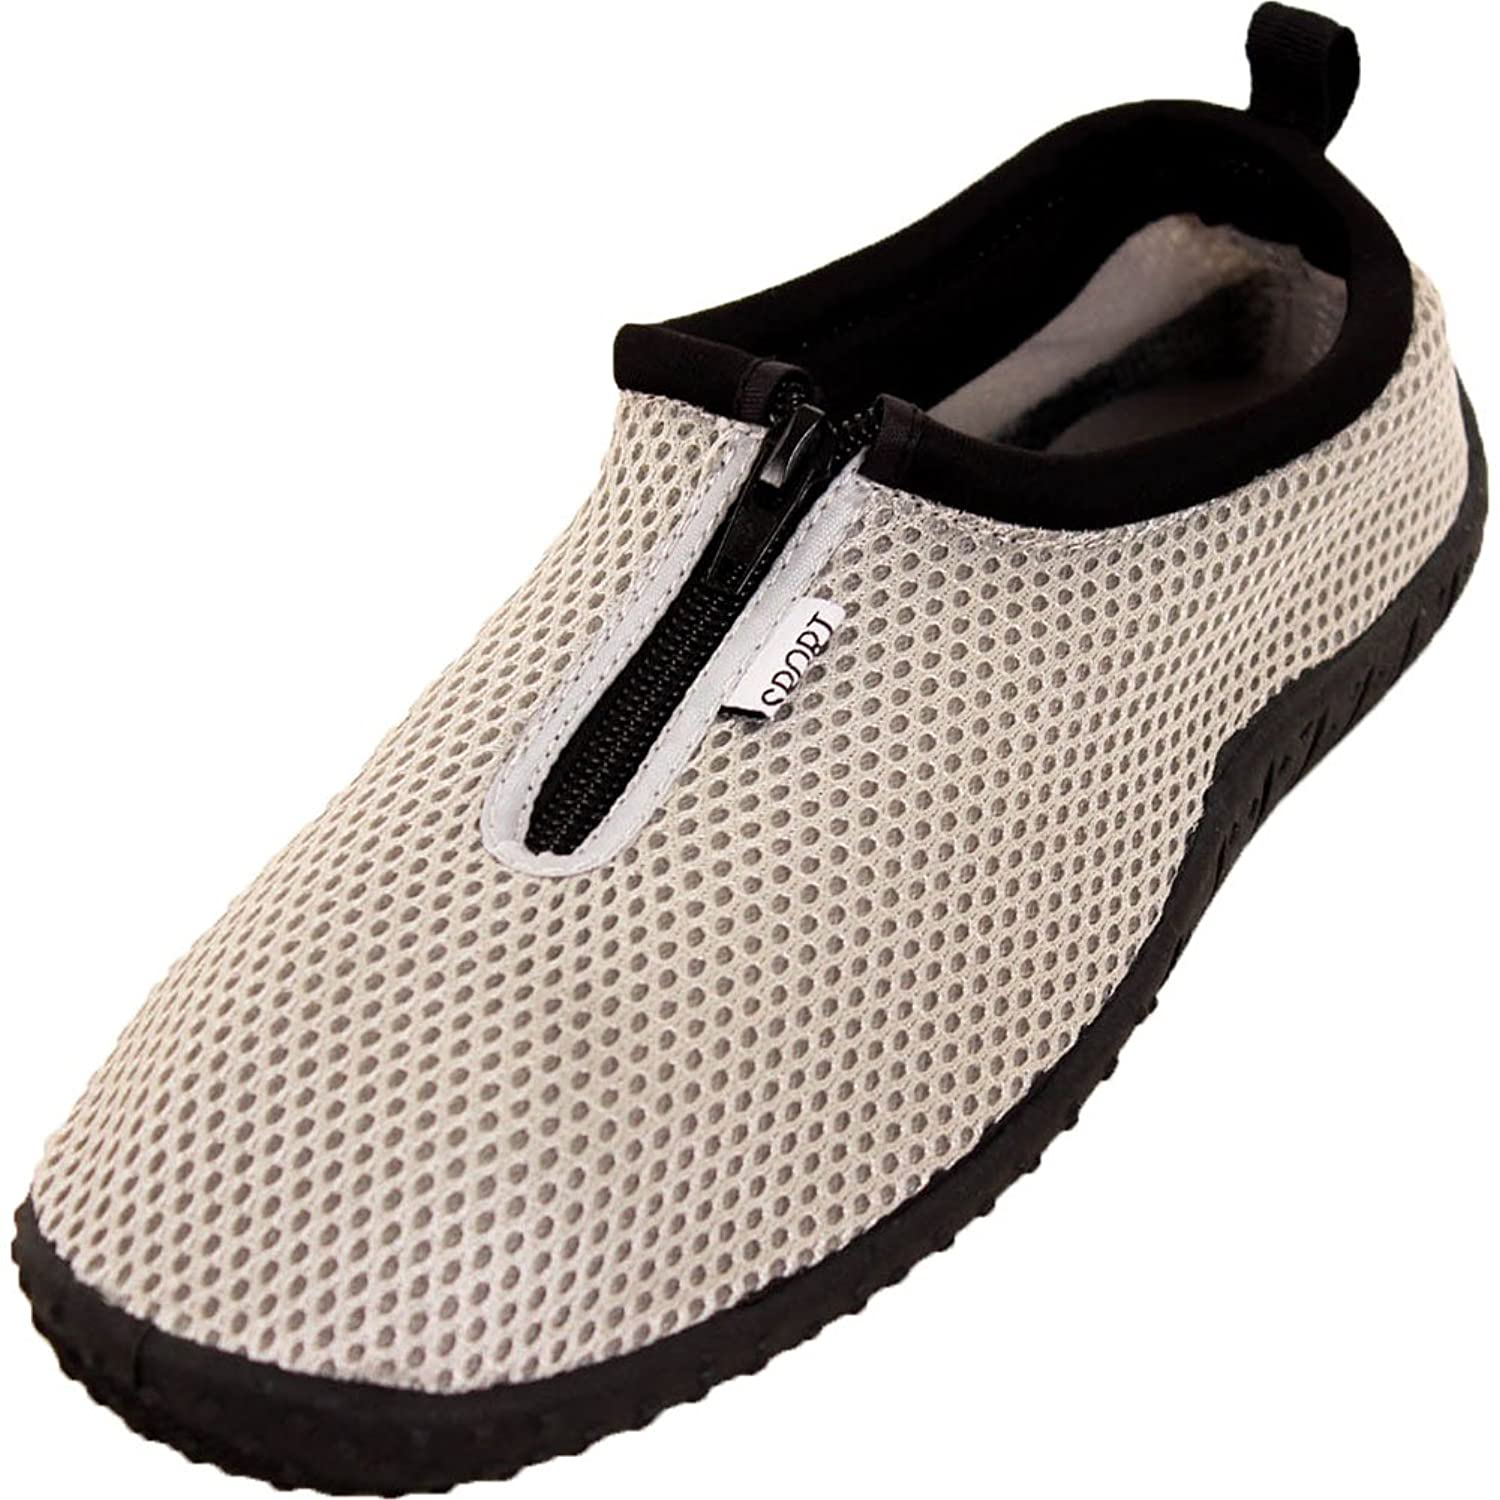 Women's Zip Up Aqua Socks Water Shoes